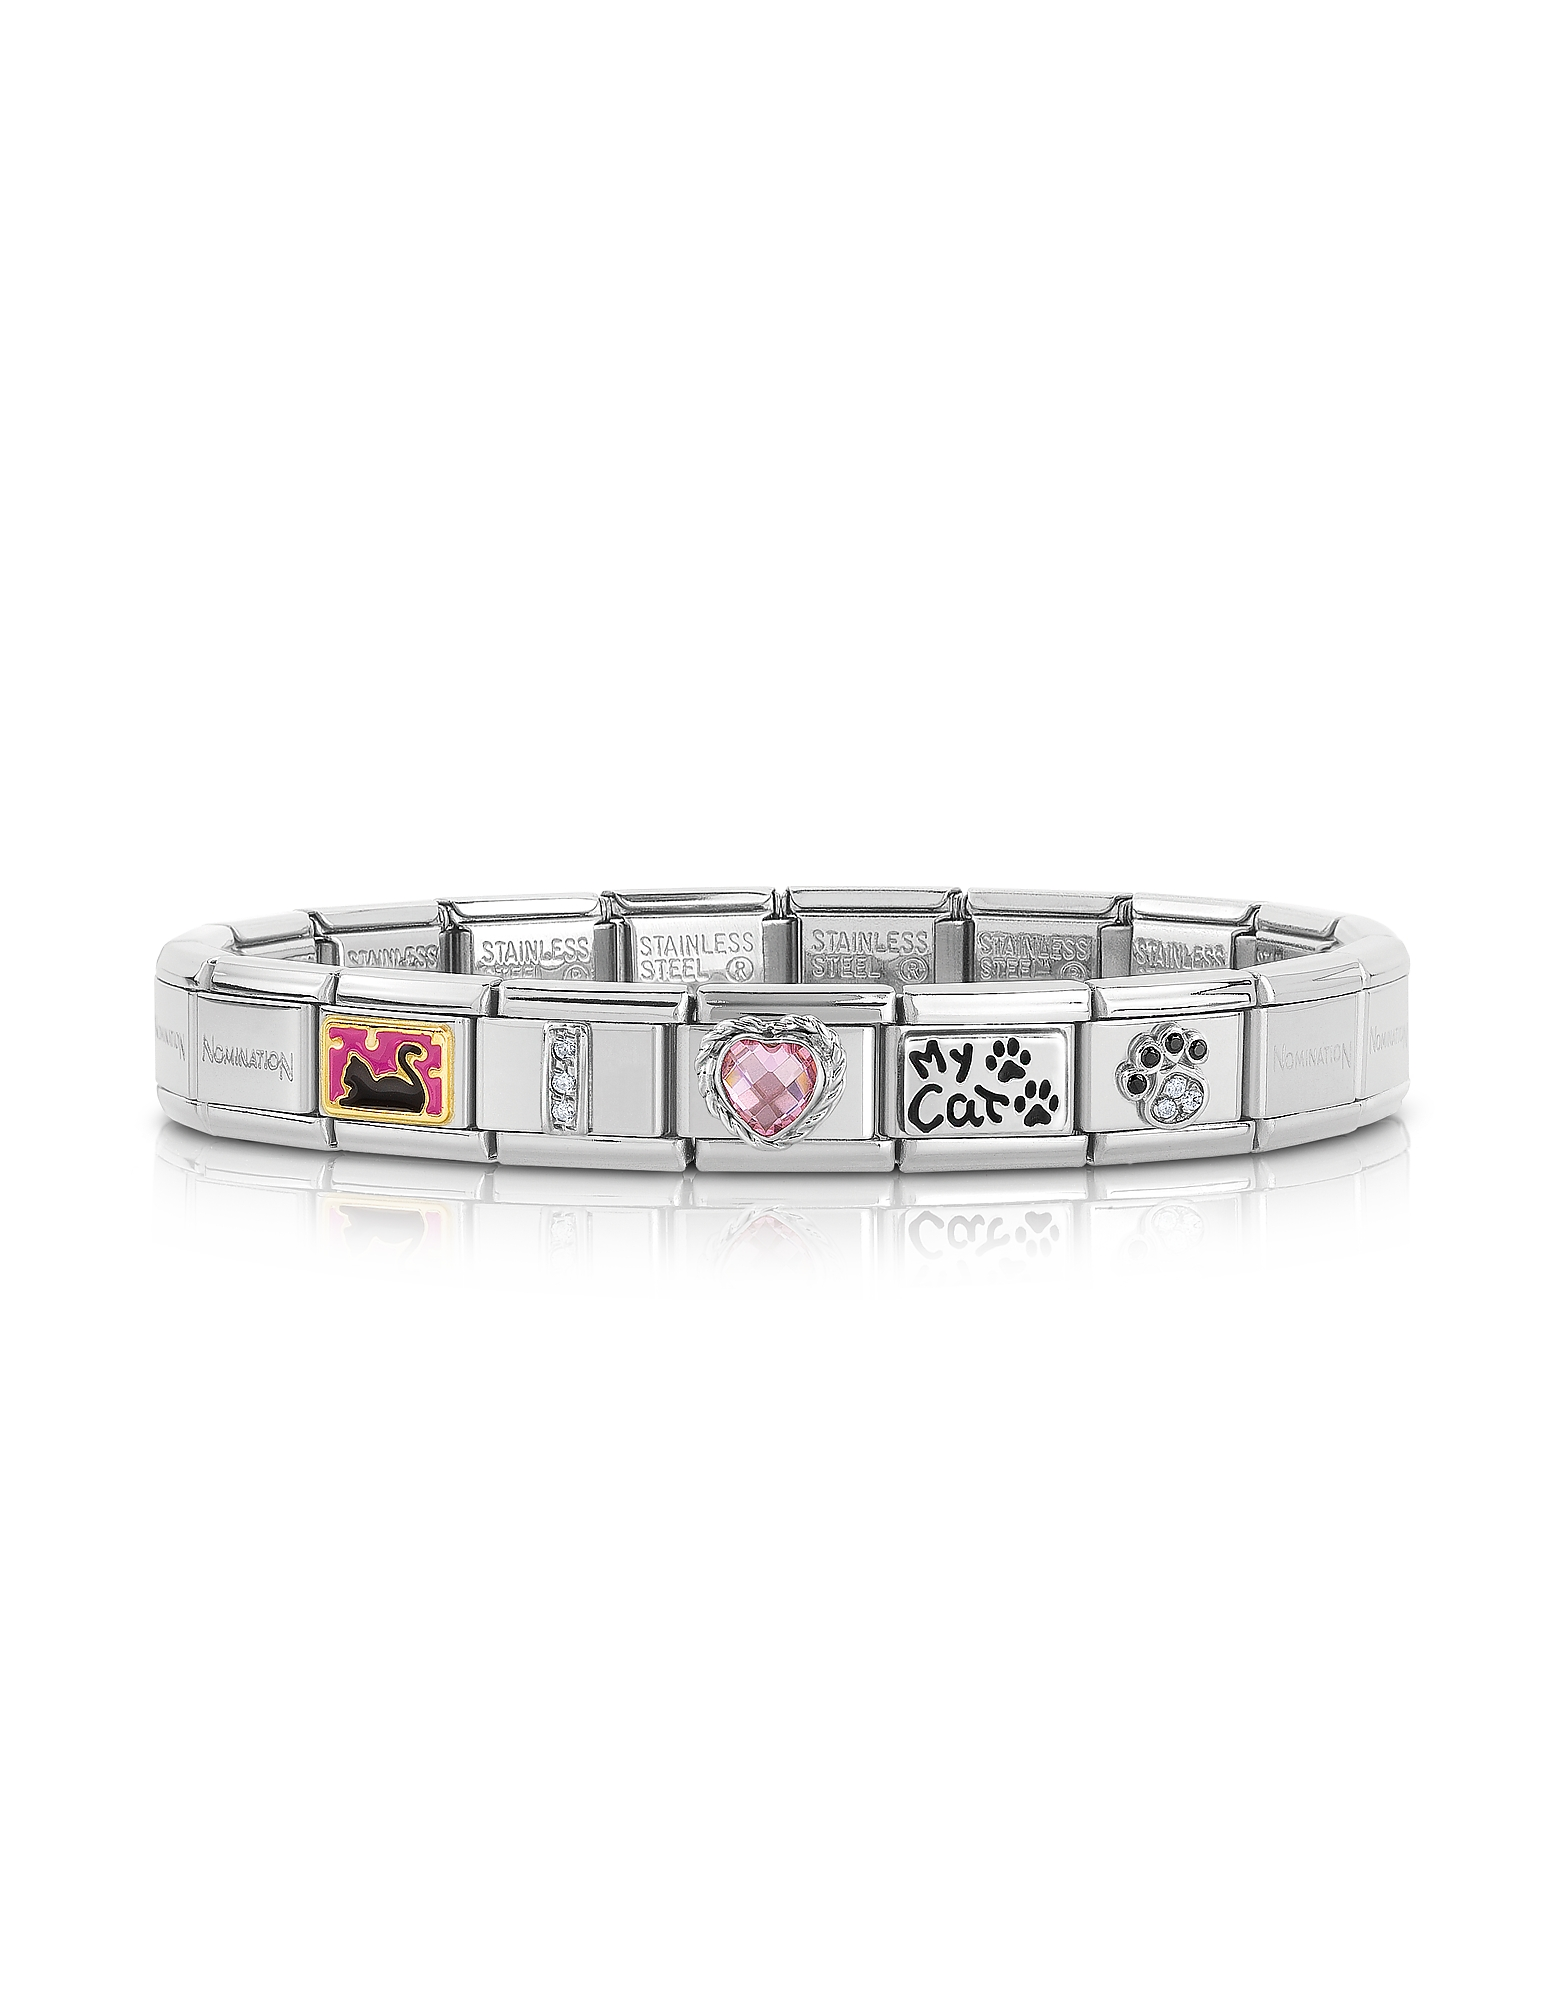 Nomination Bracelets, Classic I Love My Cat Stainless Steel Bracelet w/Pink Crystal Heart